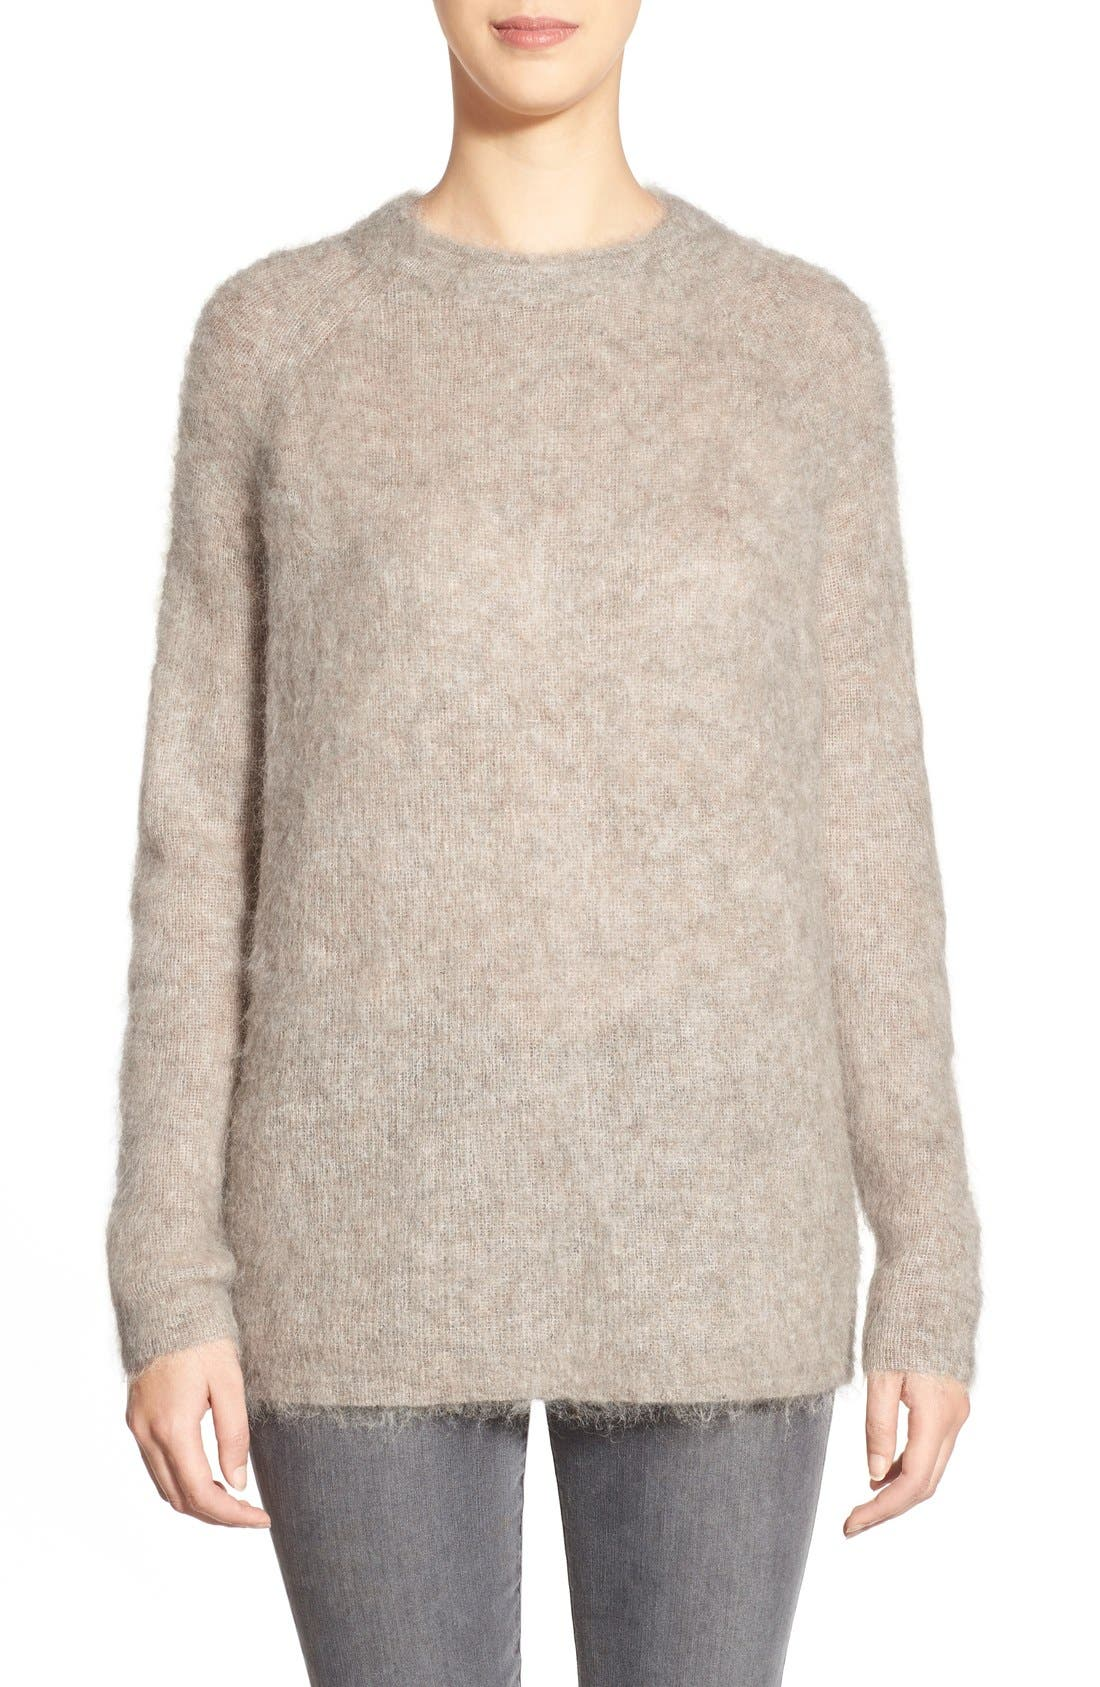 Alternate Image 1 Selected - Eileen Fisher Fuzzy Crewneck Sweater